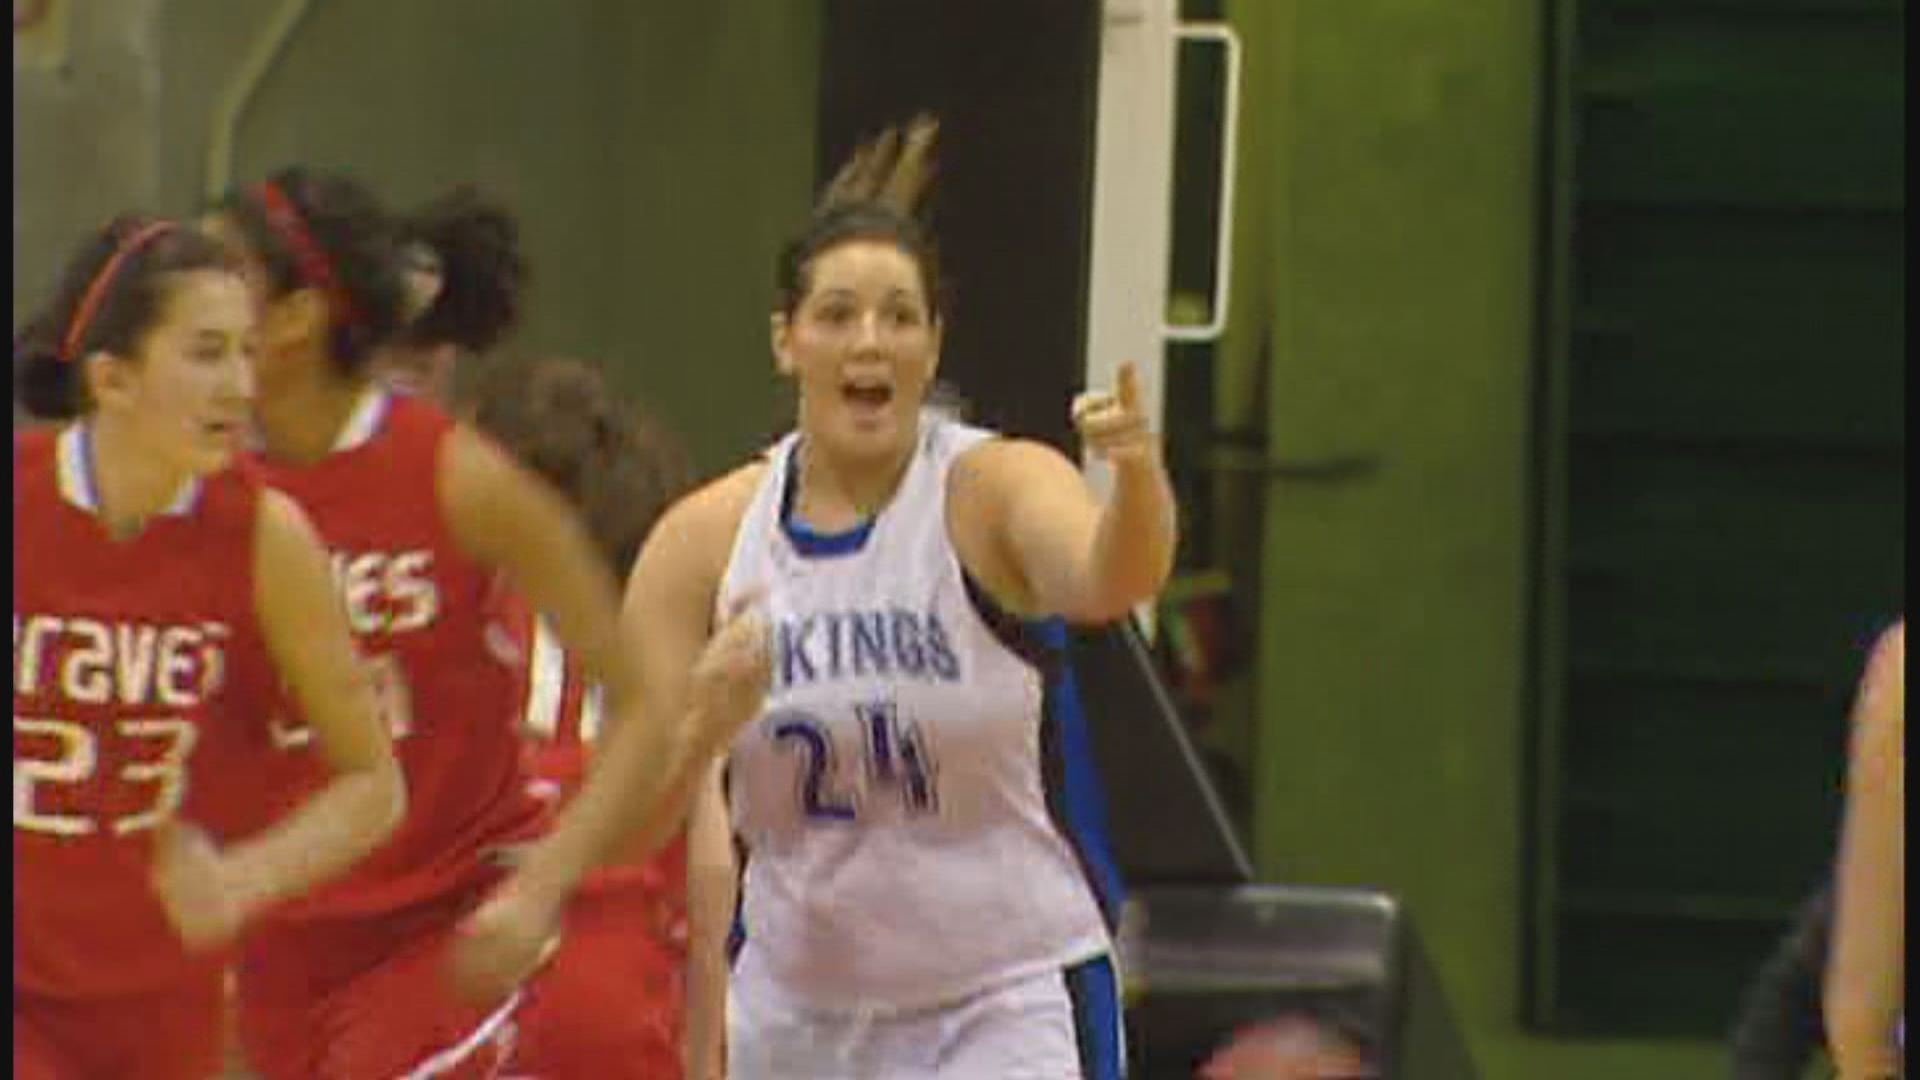 © Carli Rosenthal said Monday she would play college basketball at Saint Mary's of the West Coast Conference next year (Photo: SWX)